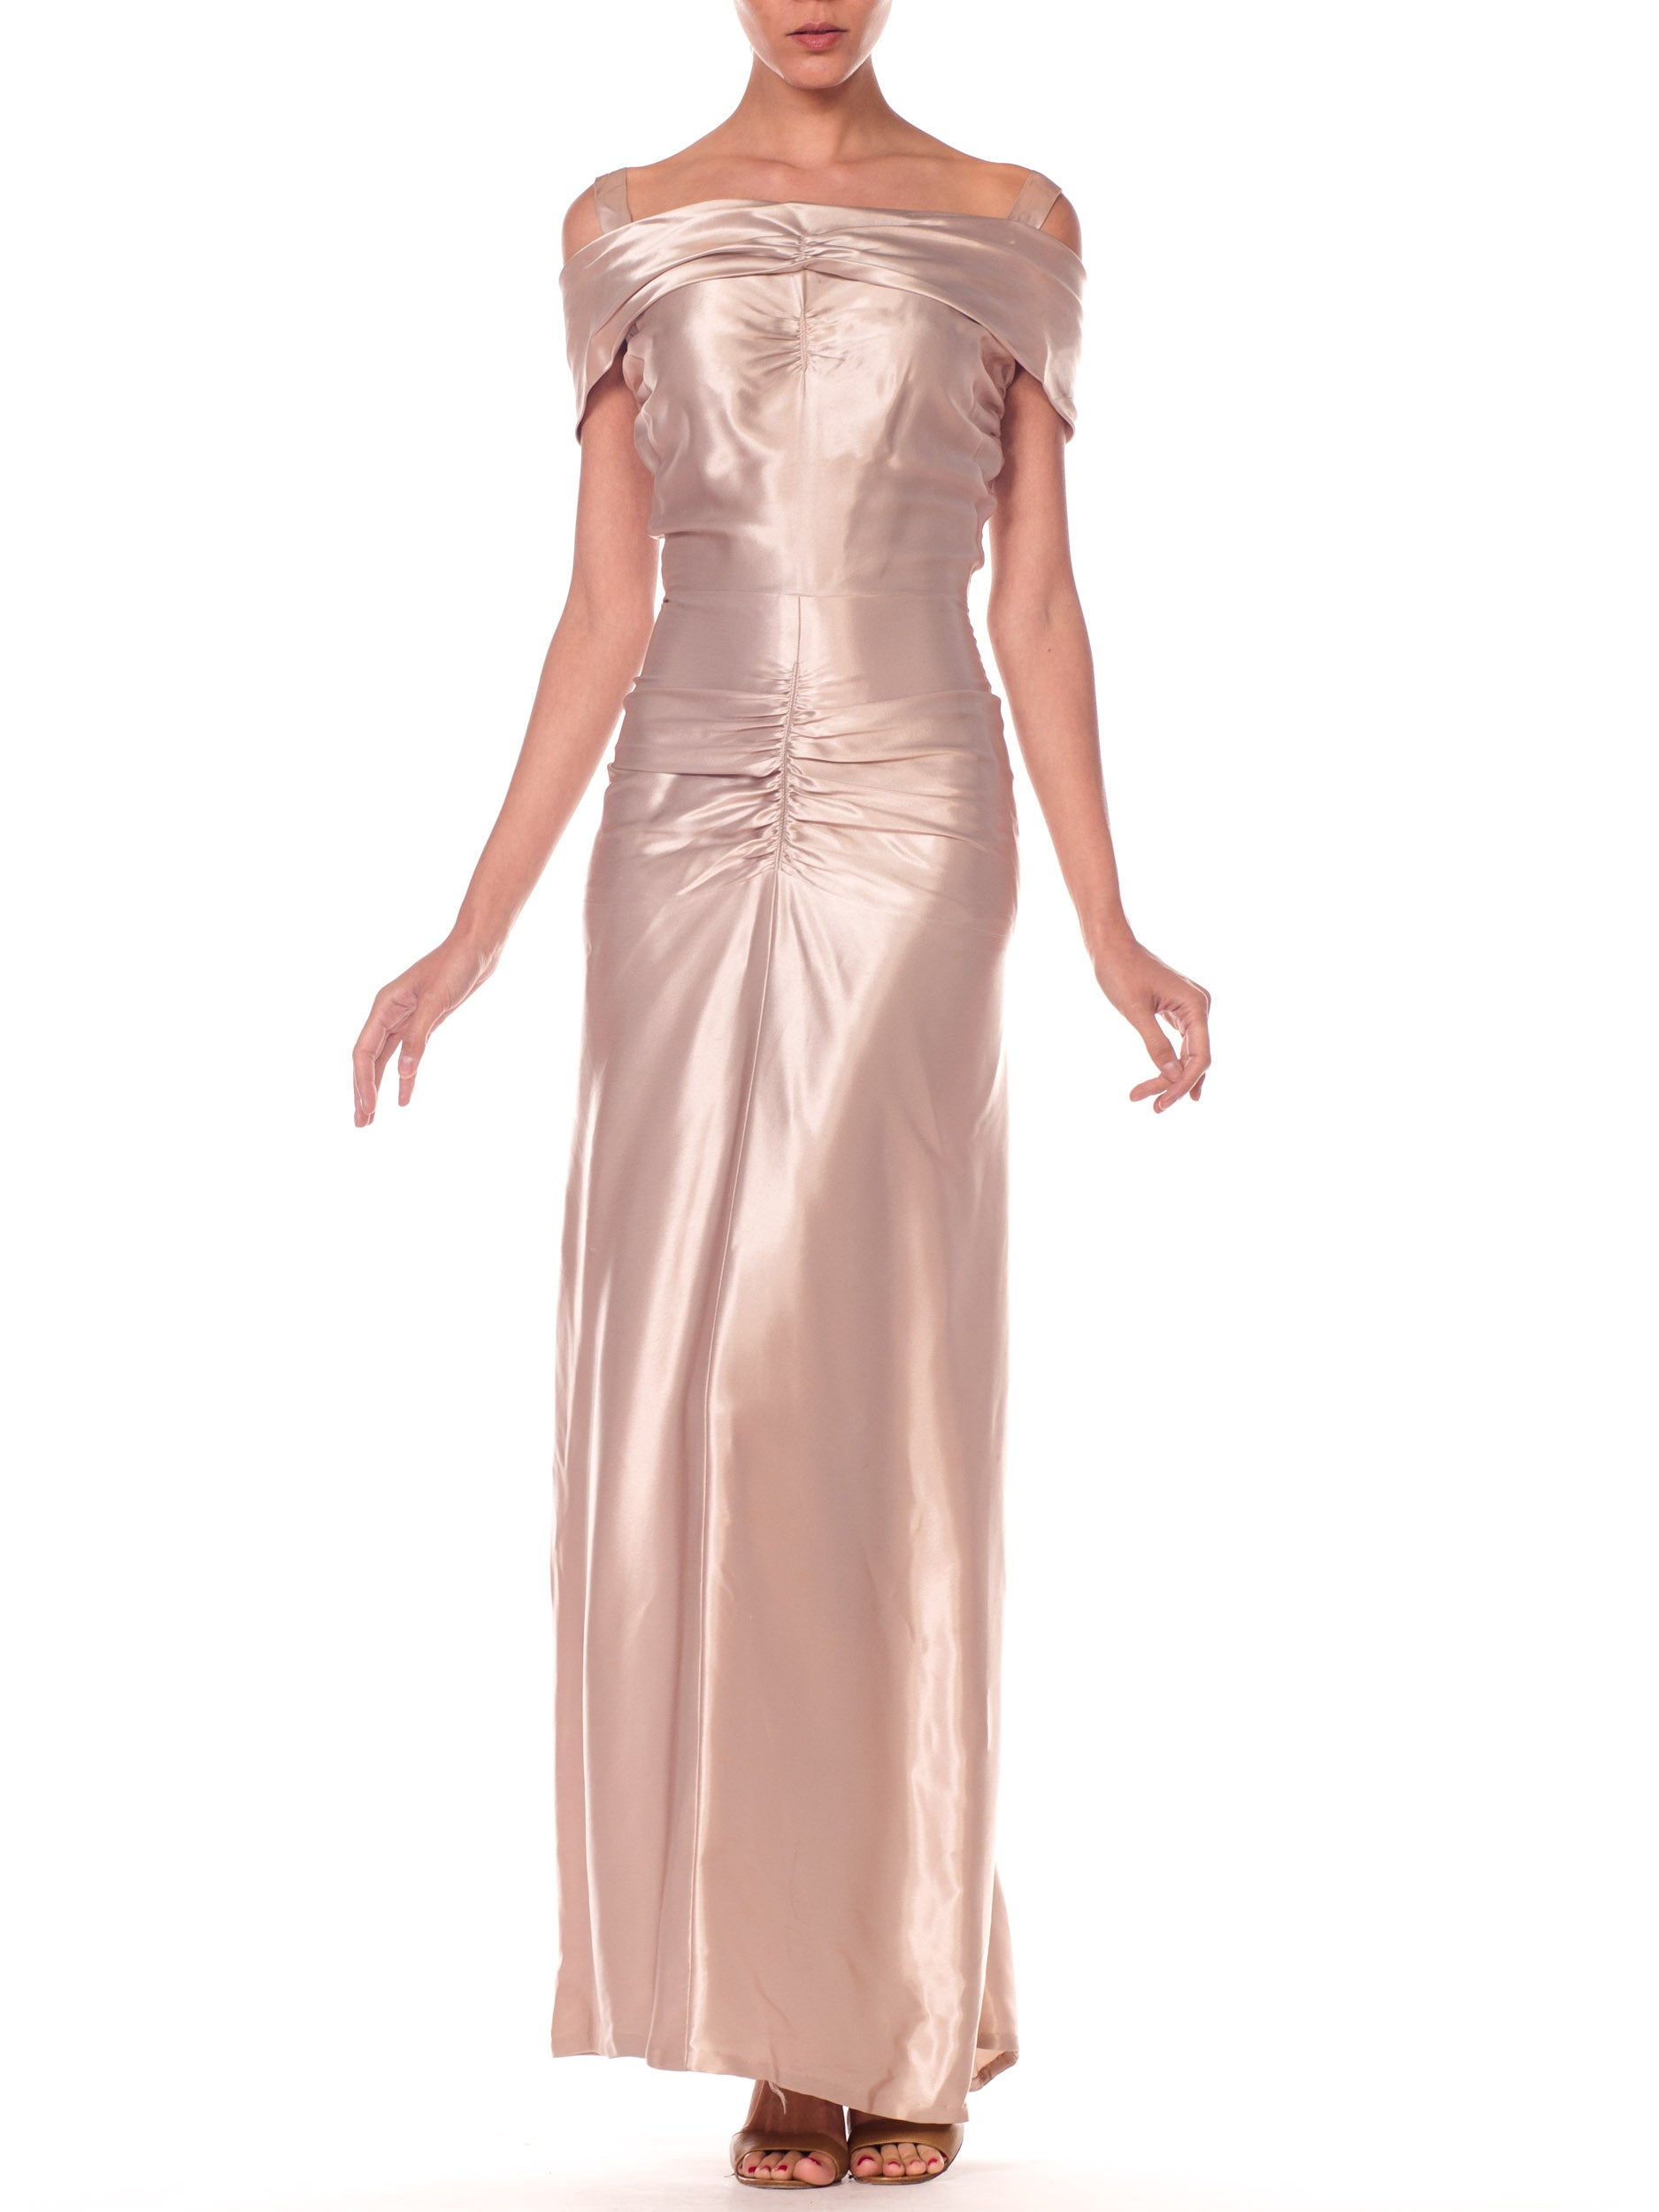 1940s Draped Silver Evening Gown With Back Bustle Detail